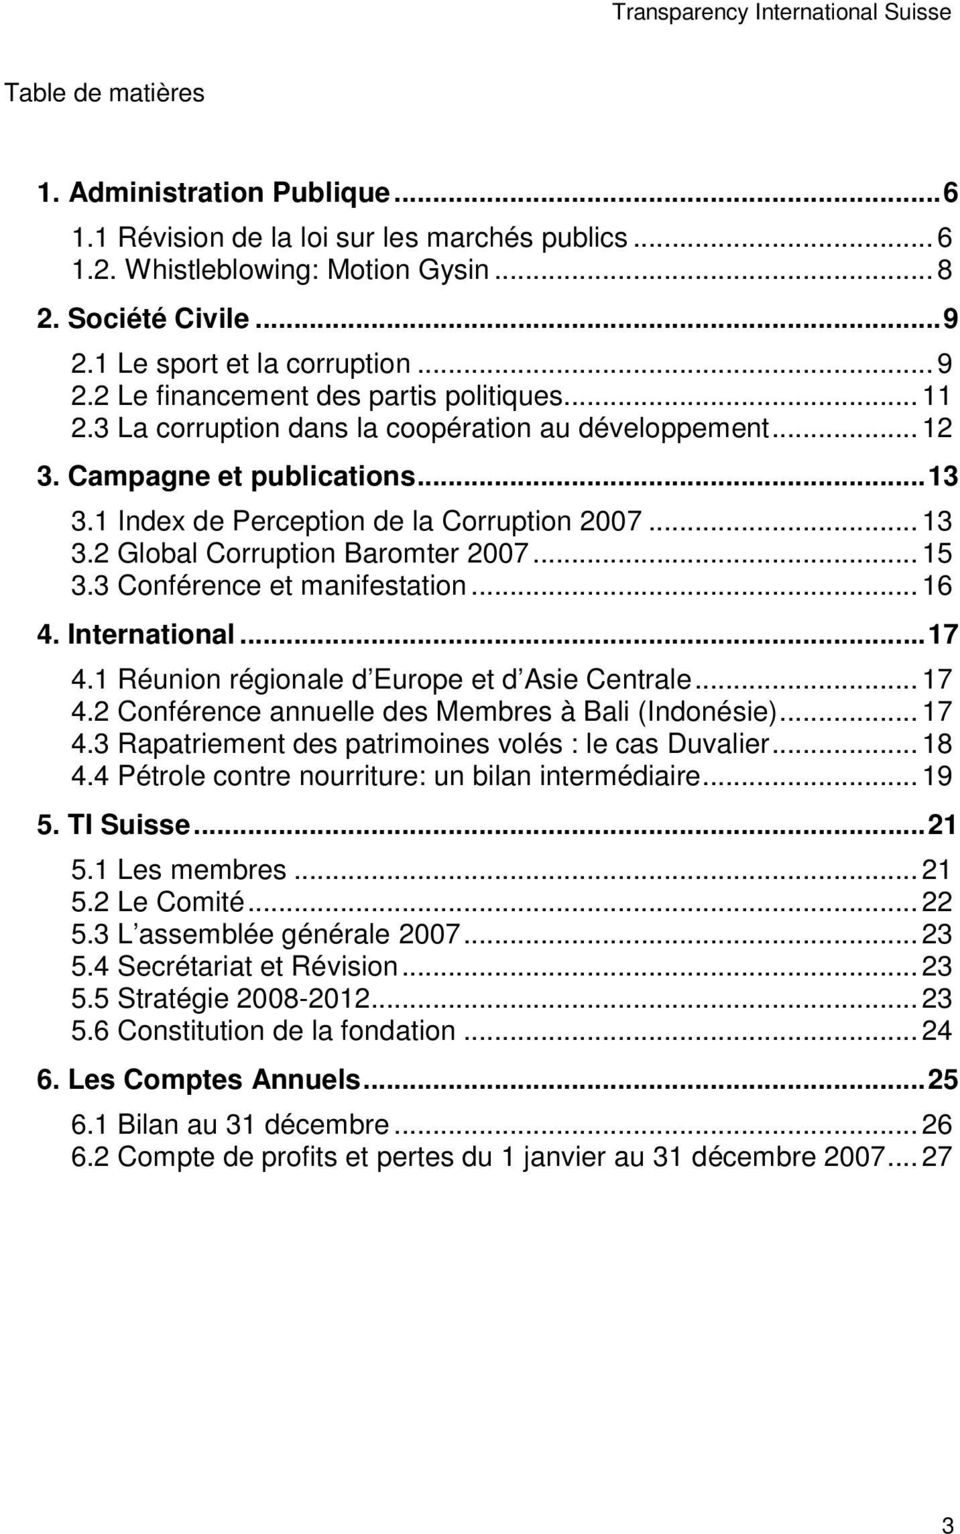 1 Index de Perception de la Corruption 2007... 13 3.2 Global Corruption Baromter 2007... 15 3.3 Conférence et manifestation... 16 4. International...17 4.